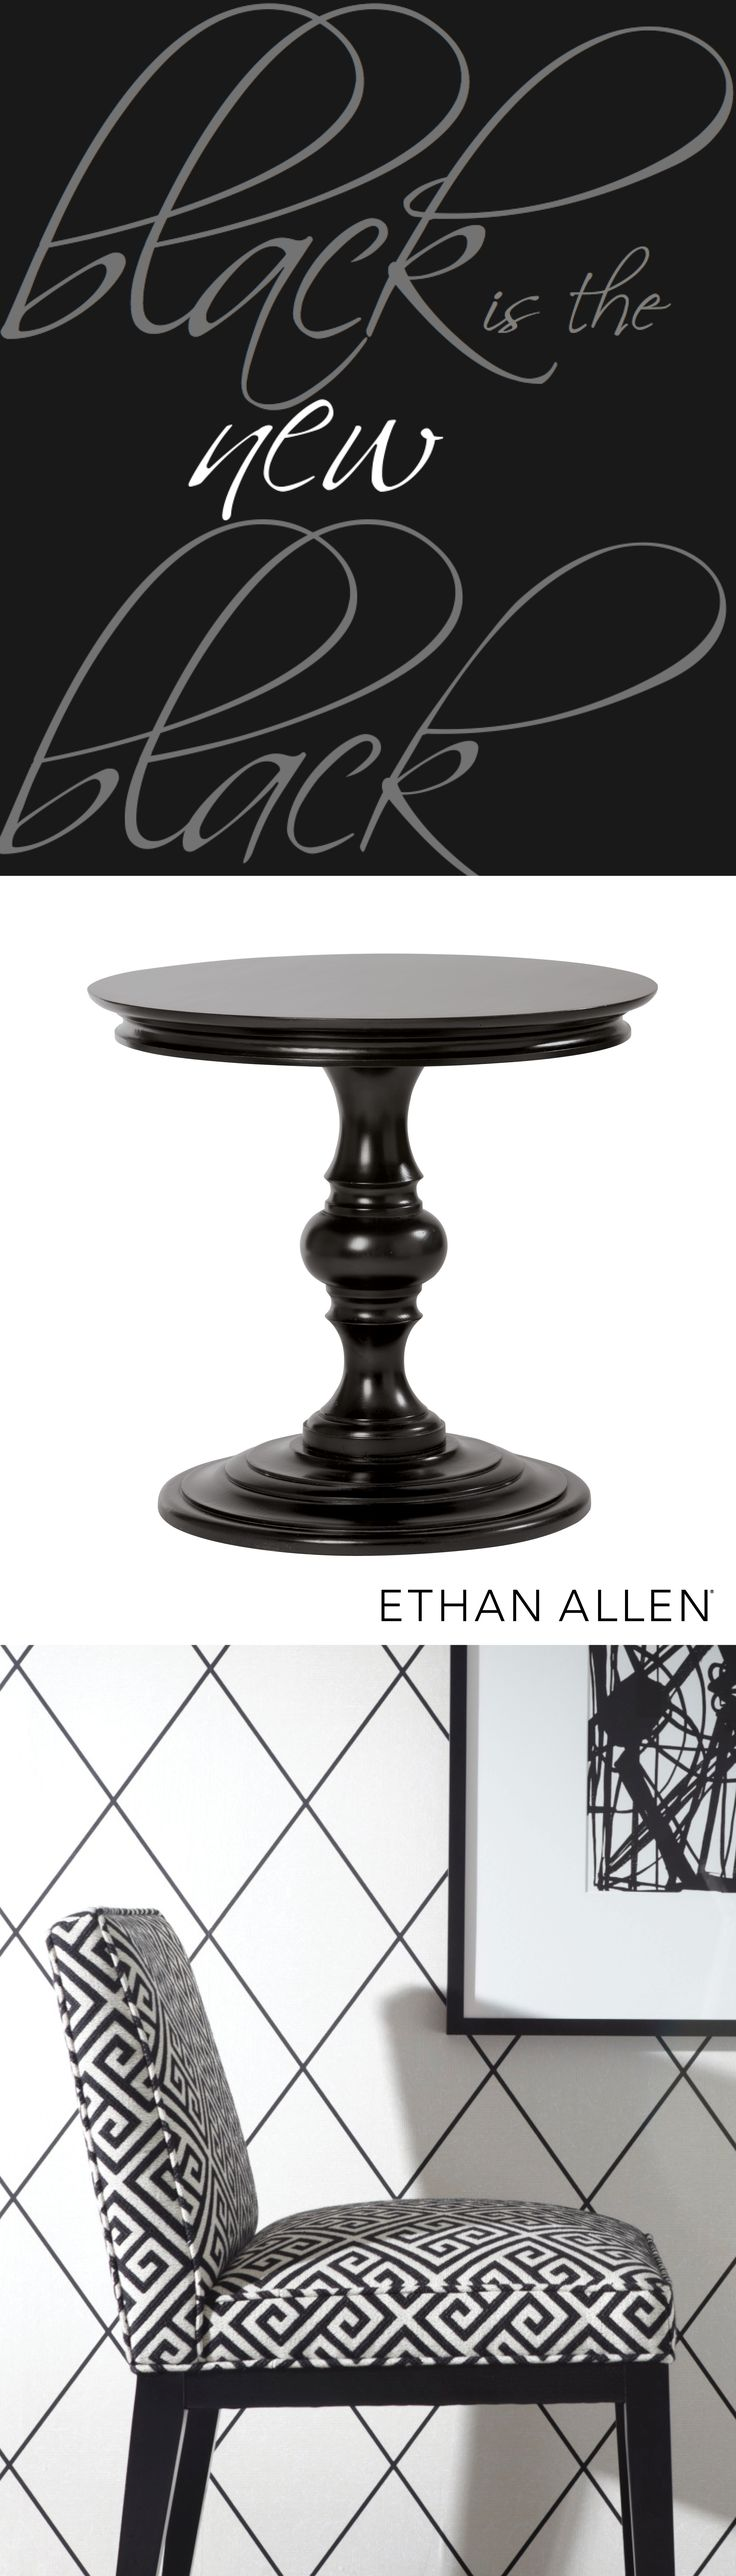 Don't fear the dark side: That's where we get some of our best design ideas! Black is timeless, whether by itself (a singular stylish table can hold its own anywhere), or paired with white, its polar opposite. A time-honored Greek key pattern adds compound interest.